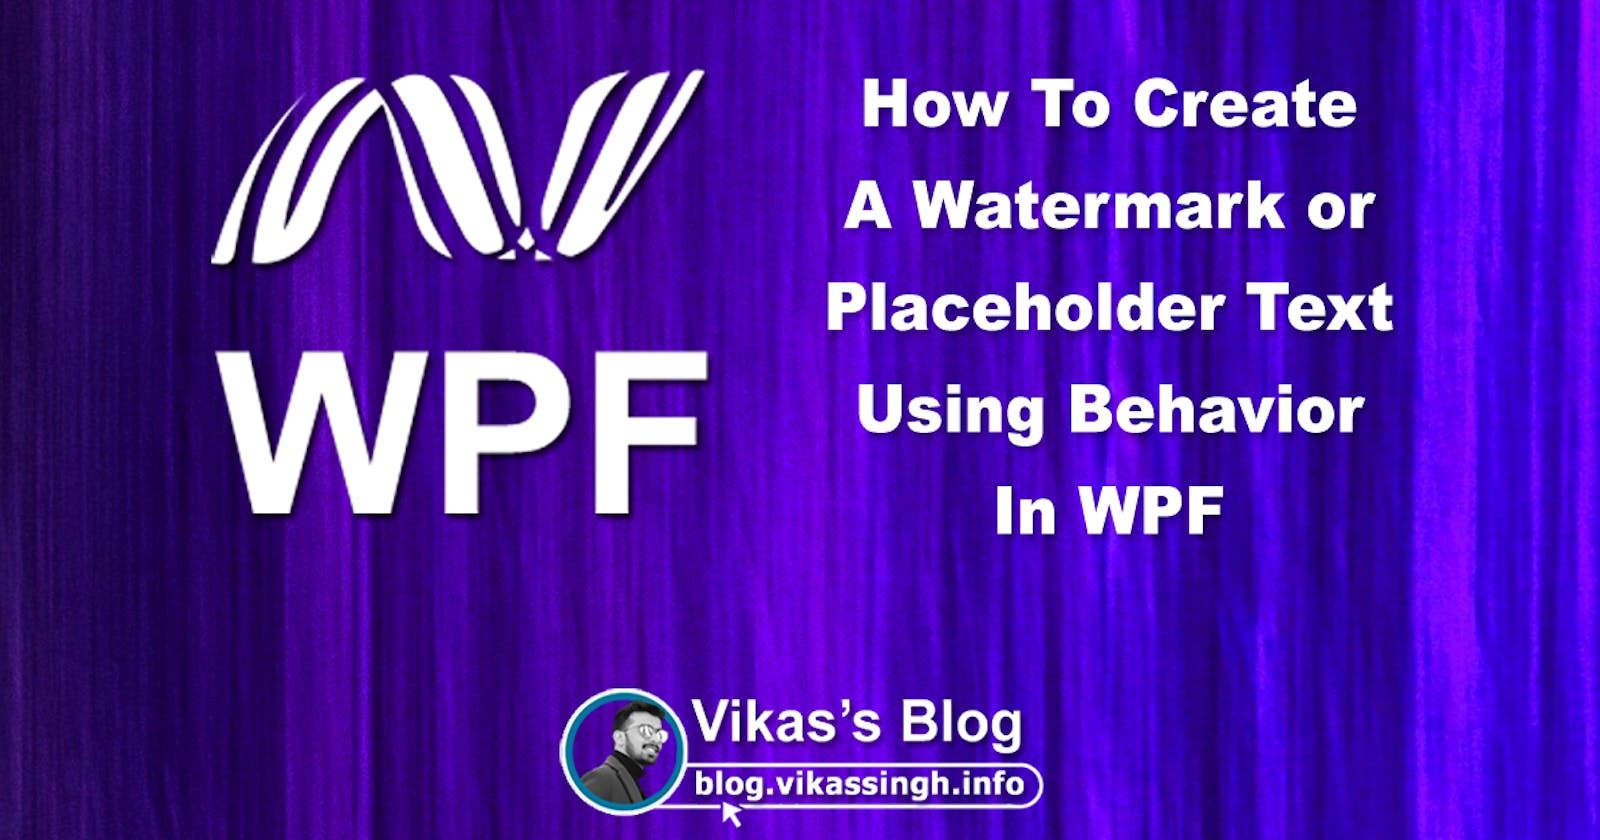 How To Create A Watermark/Placeholder Text Using Behavior In WPF